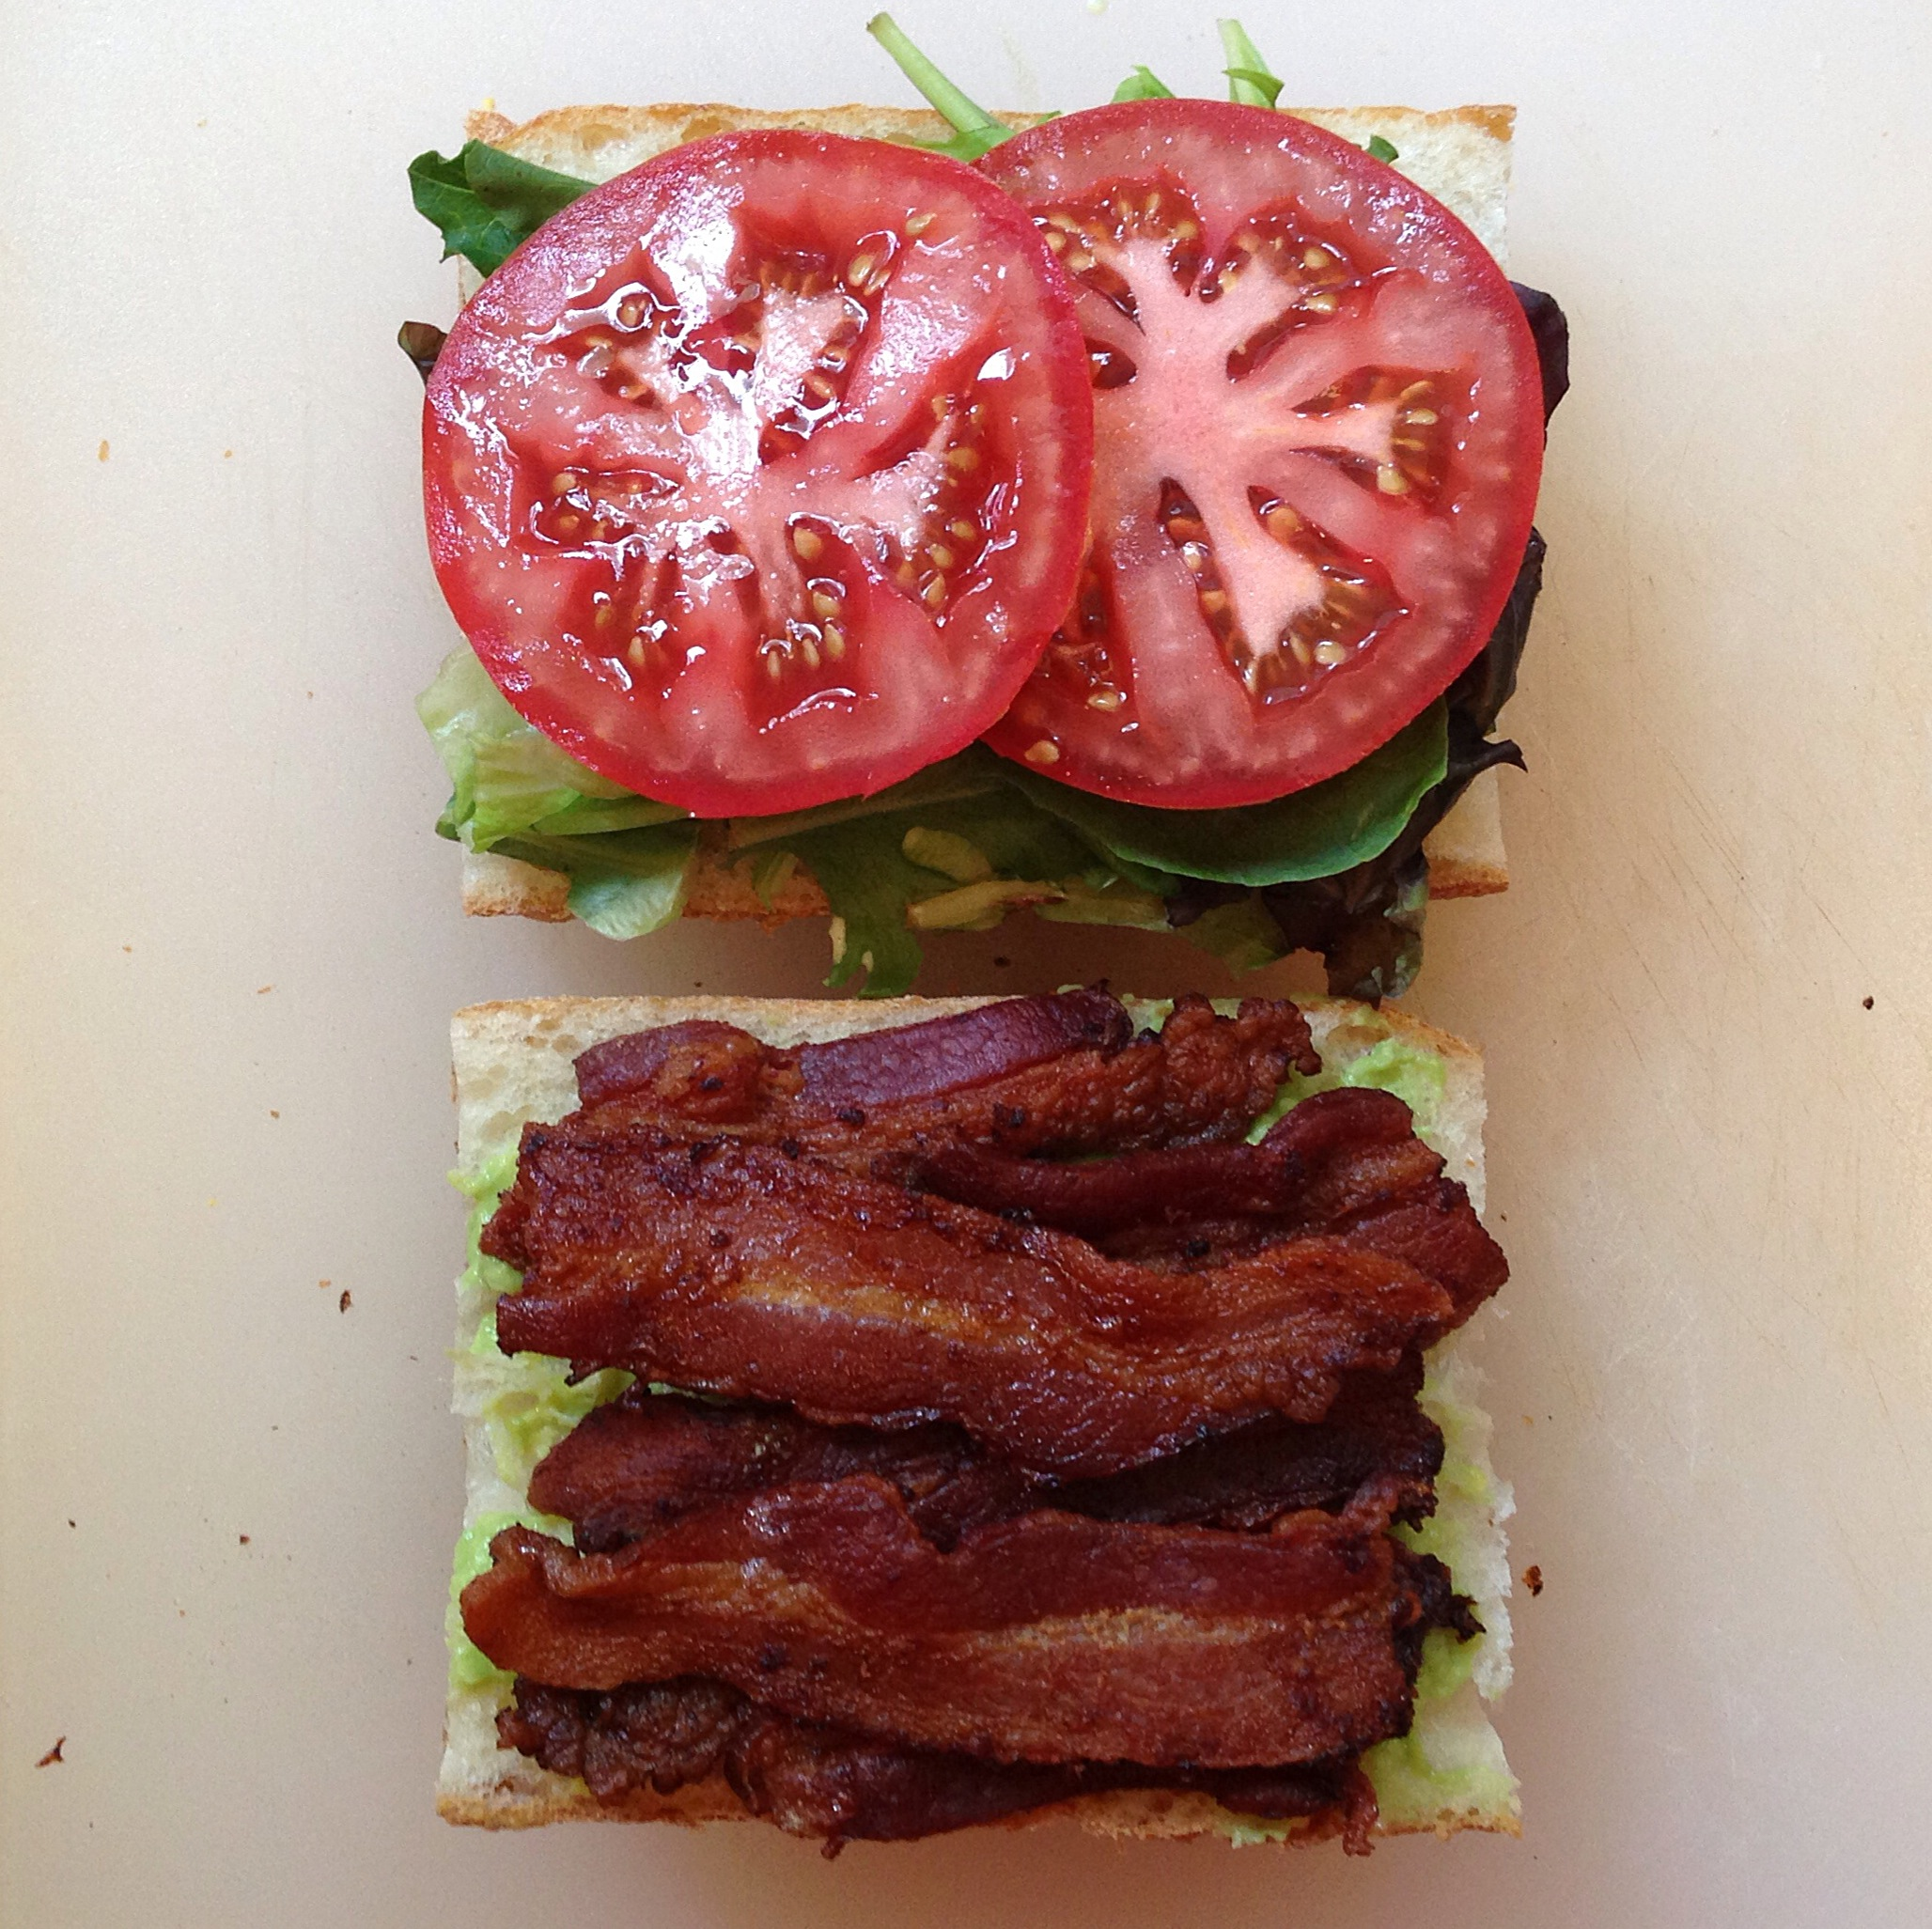 A BLT sandwich laid out on two slices of bread before being put together